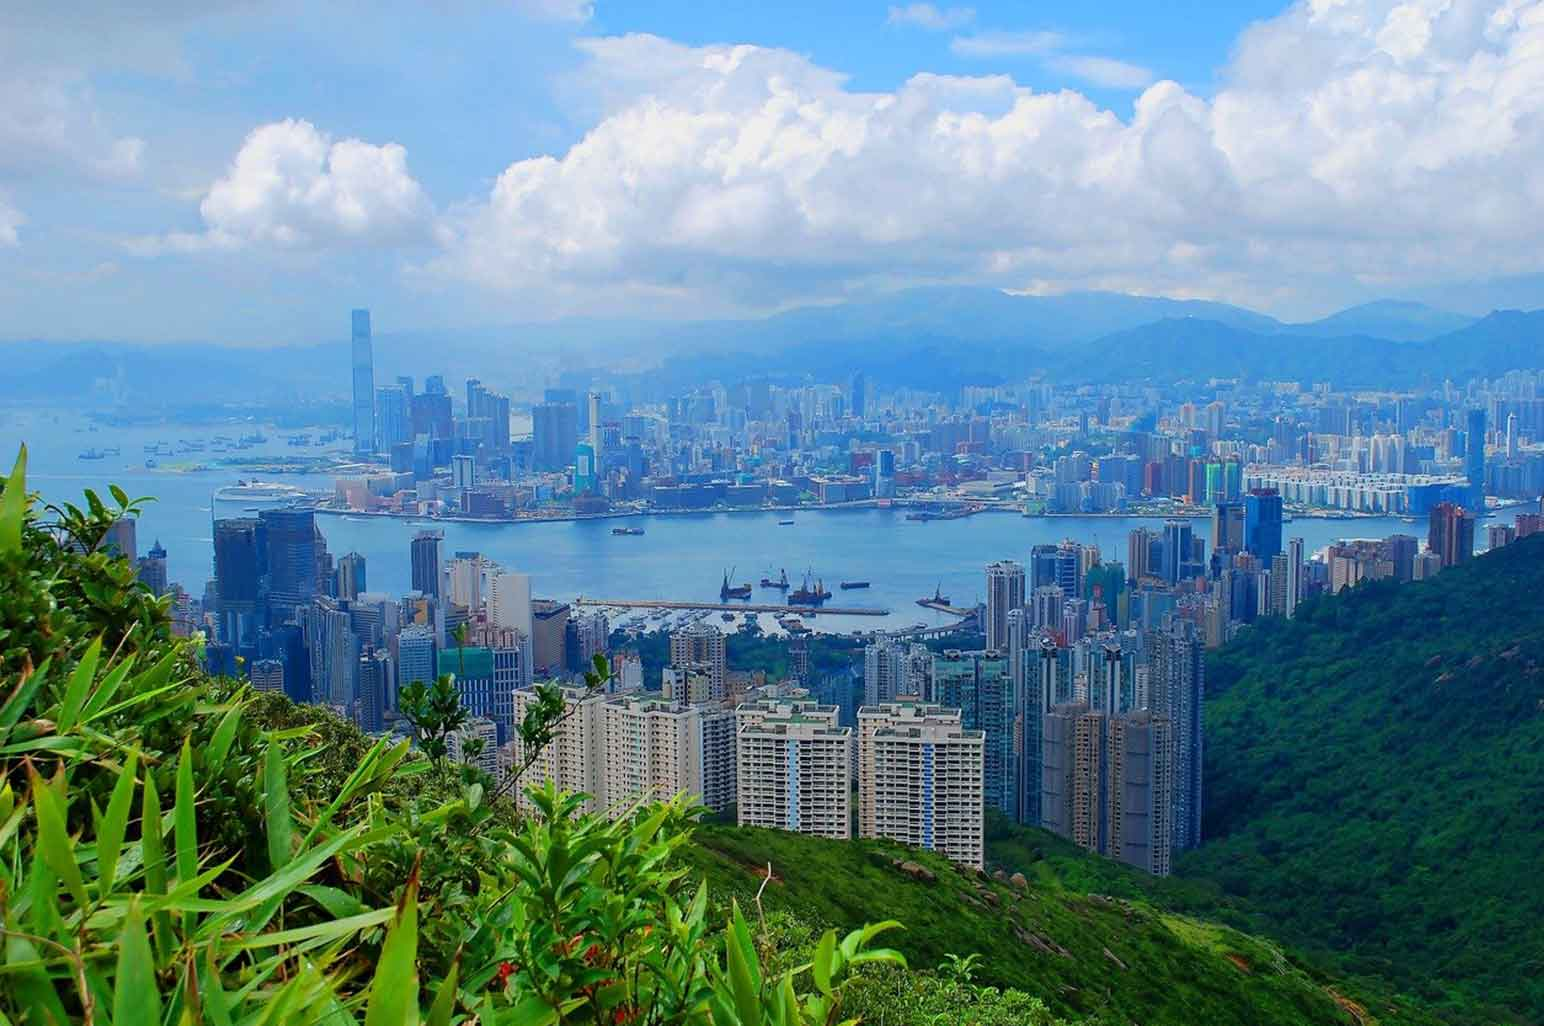 Hiking Spots in Hong Kong